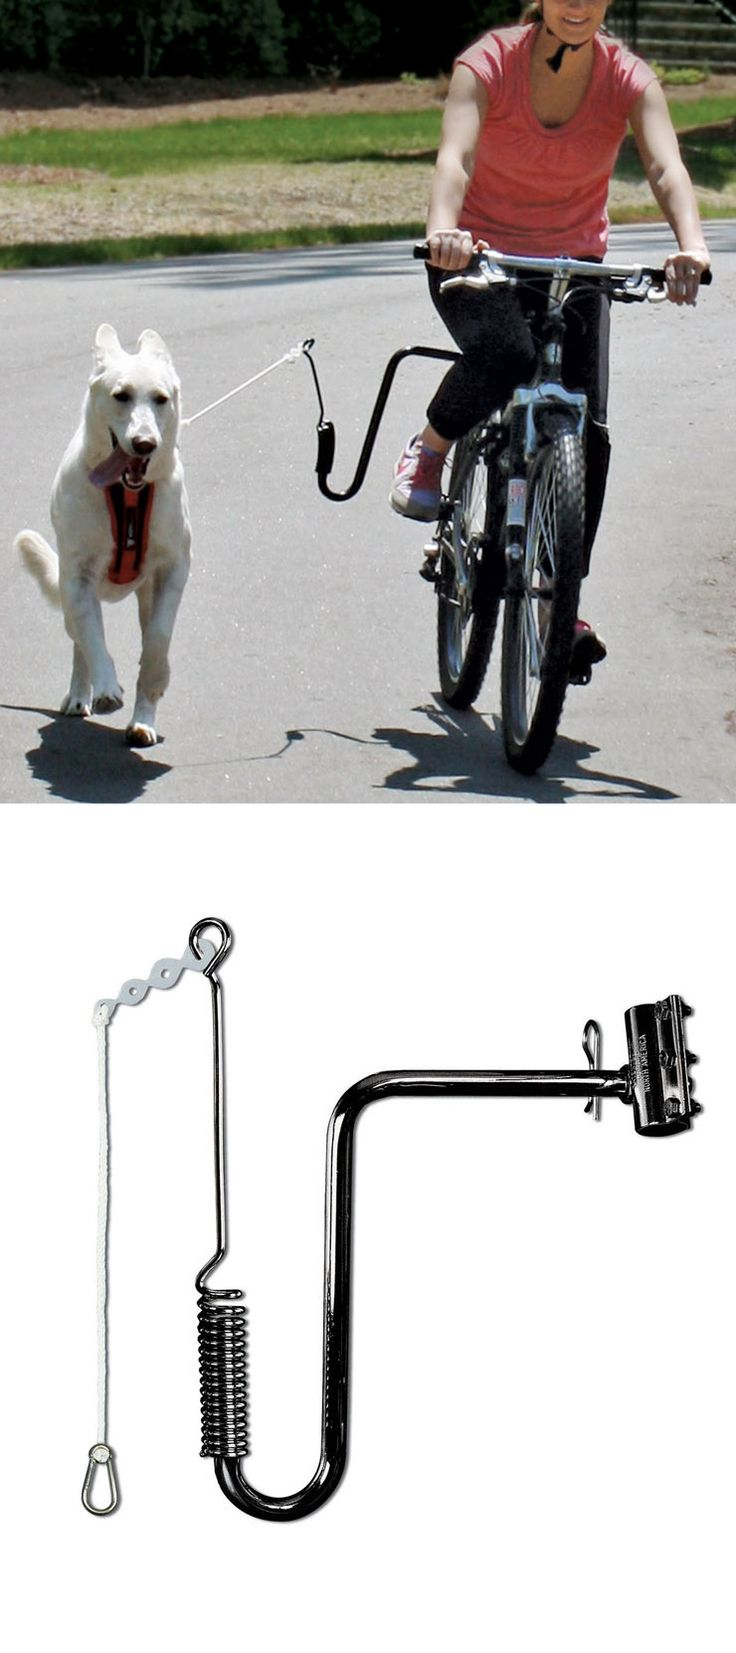 Dog Bike Excerciser - features an arm with a steel spring that absorbs up to 90% of the force of your pooch's tugs. You keep your balance on the bike while protecting him from traffic, pedals, and wheels. It even has a safety release that frees him instantly should he get caught around a tree or hydrant.